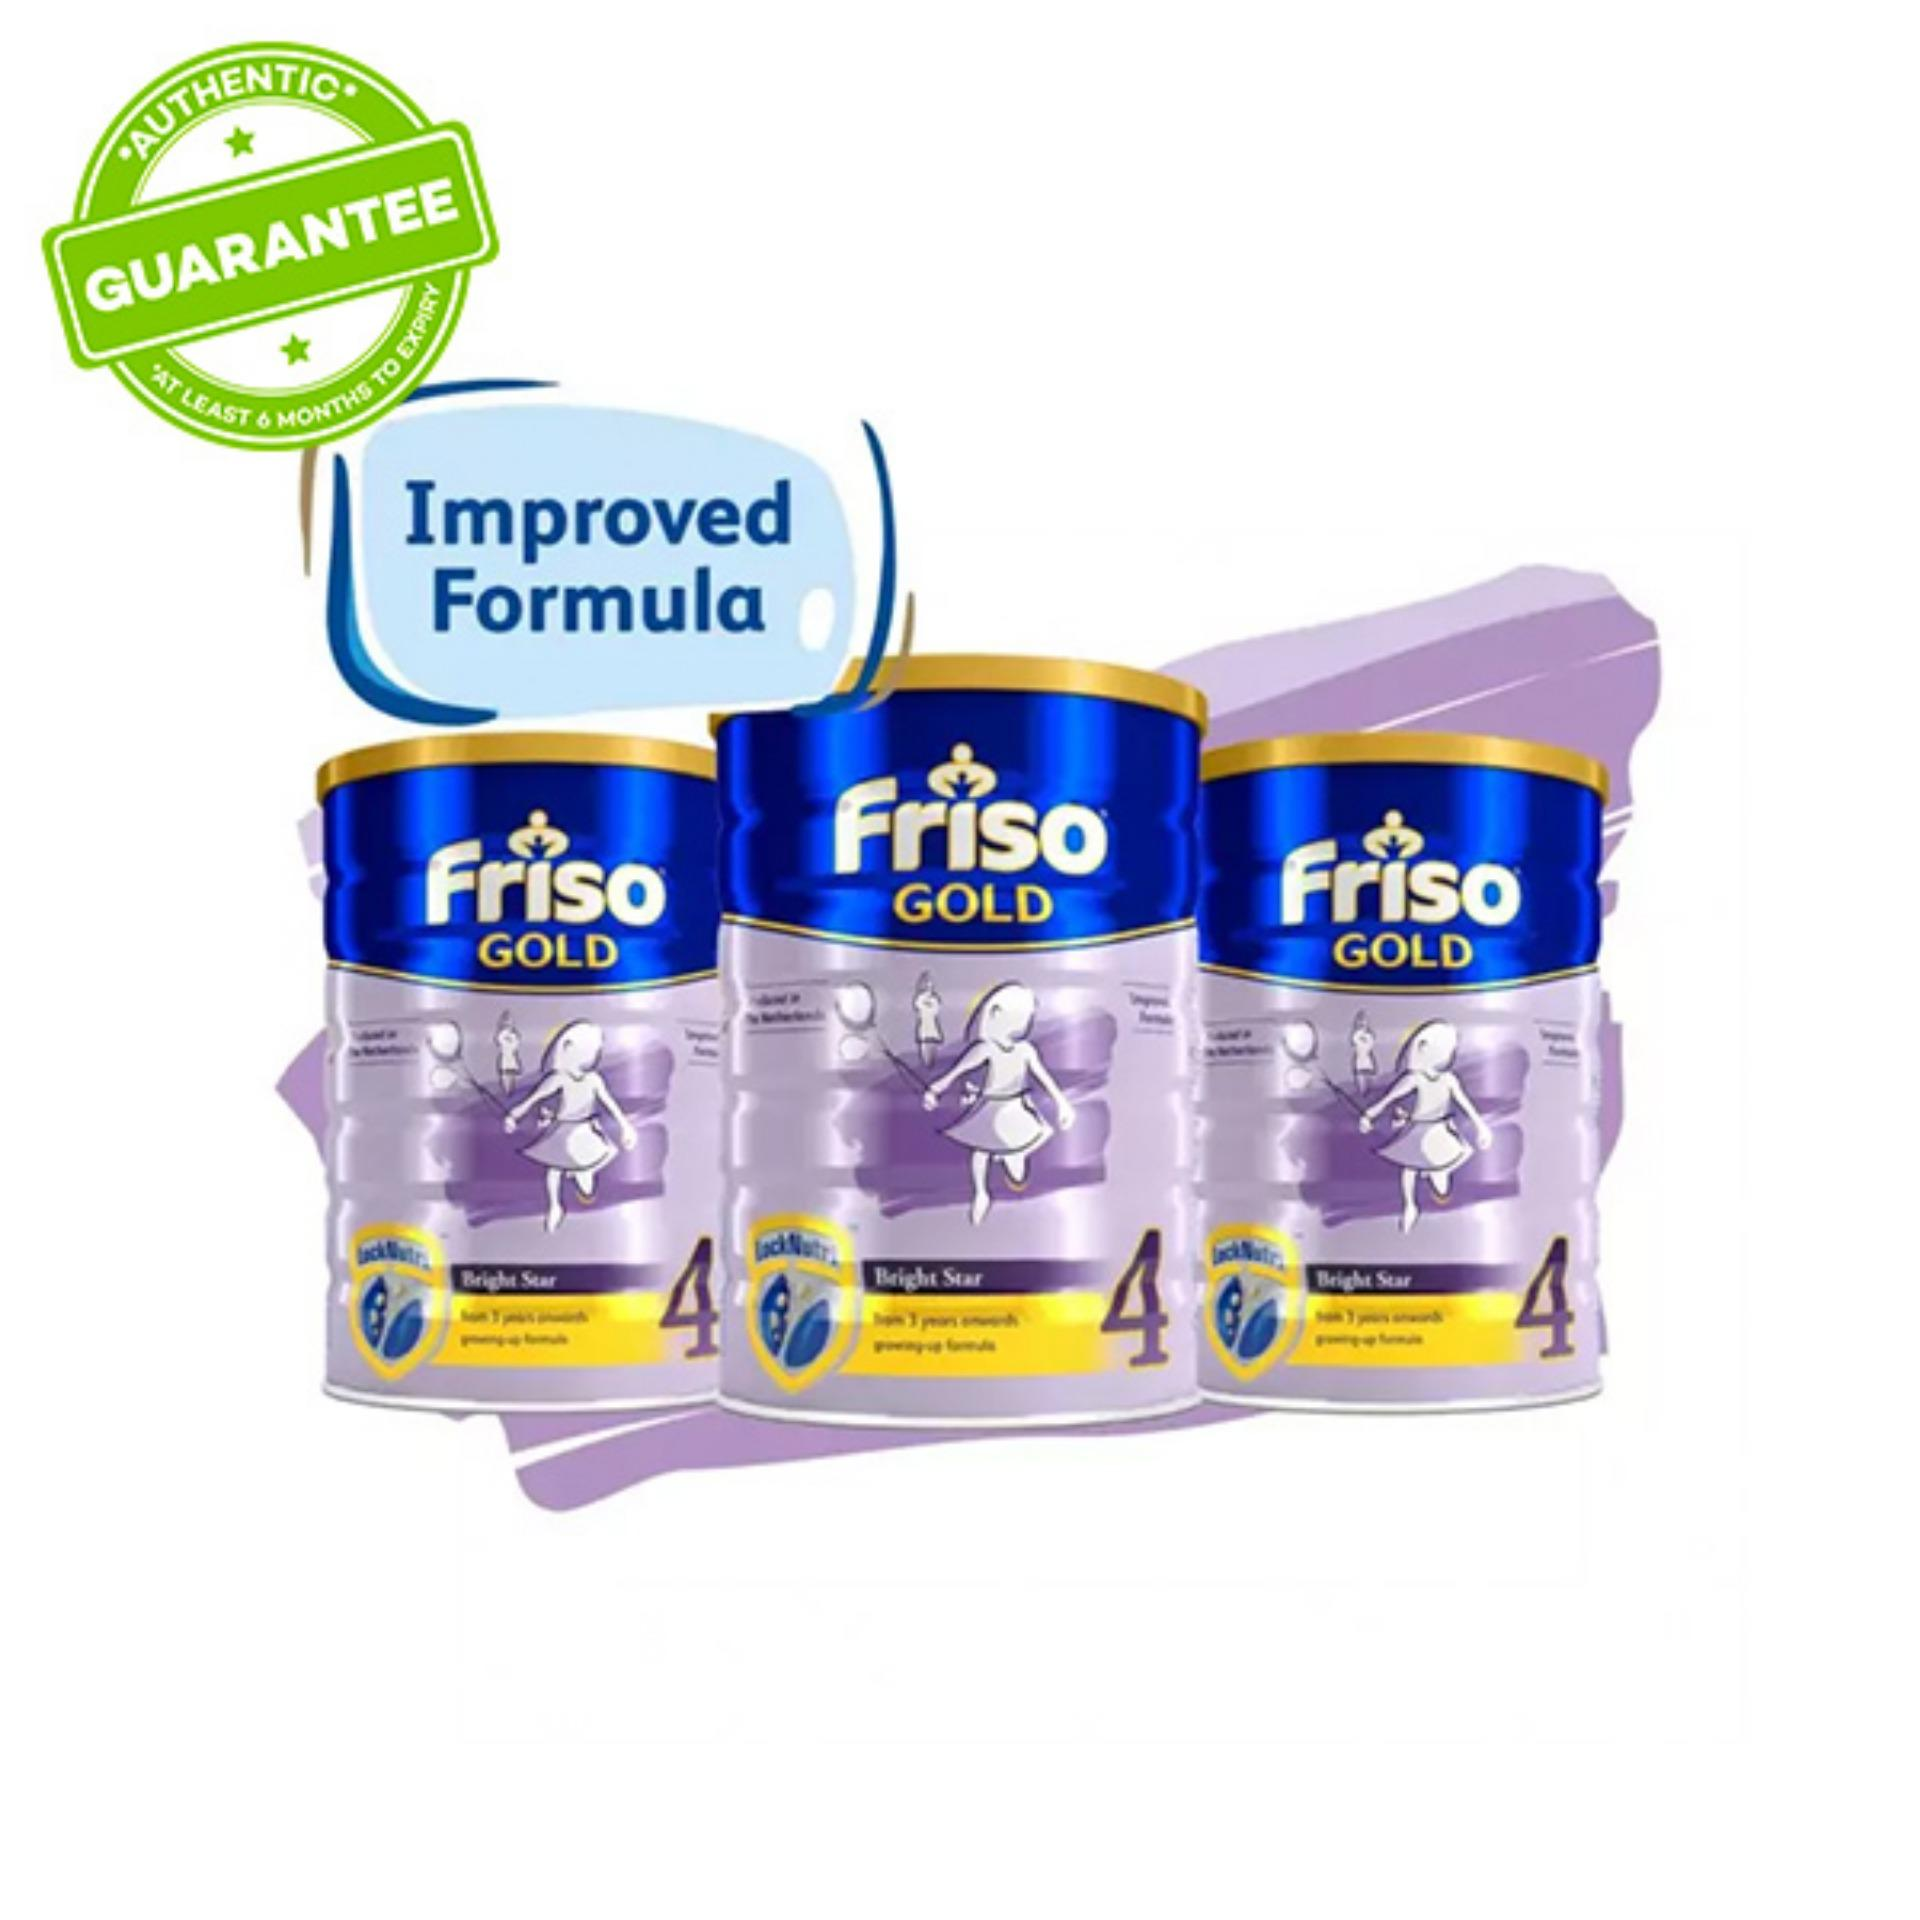 Friso Gold 4 Growing Up Milk 1.8kg x 3 tins